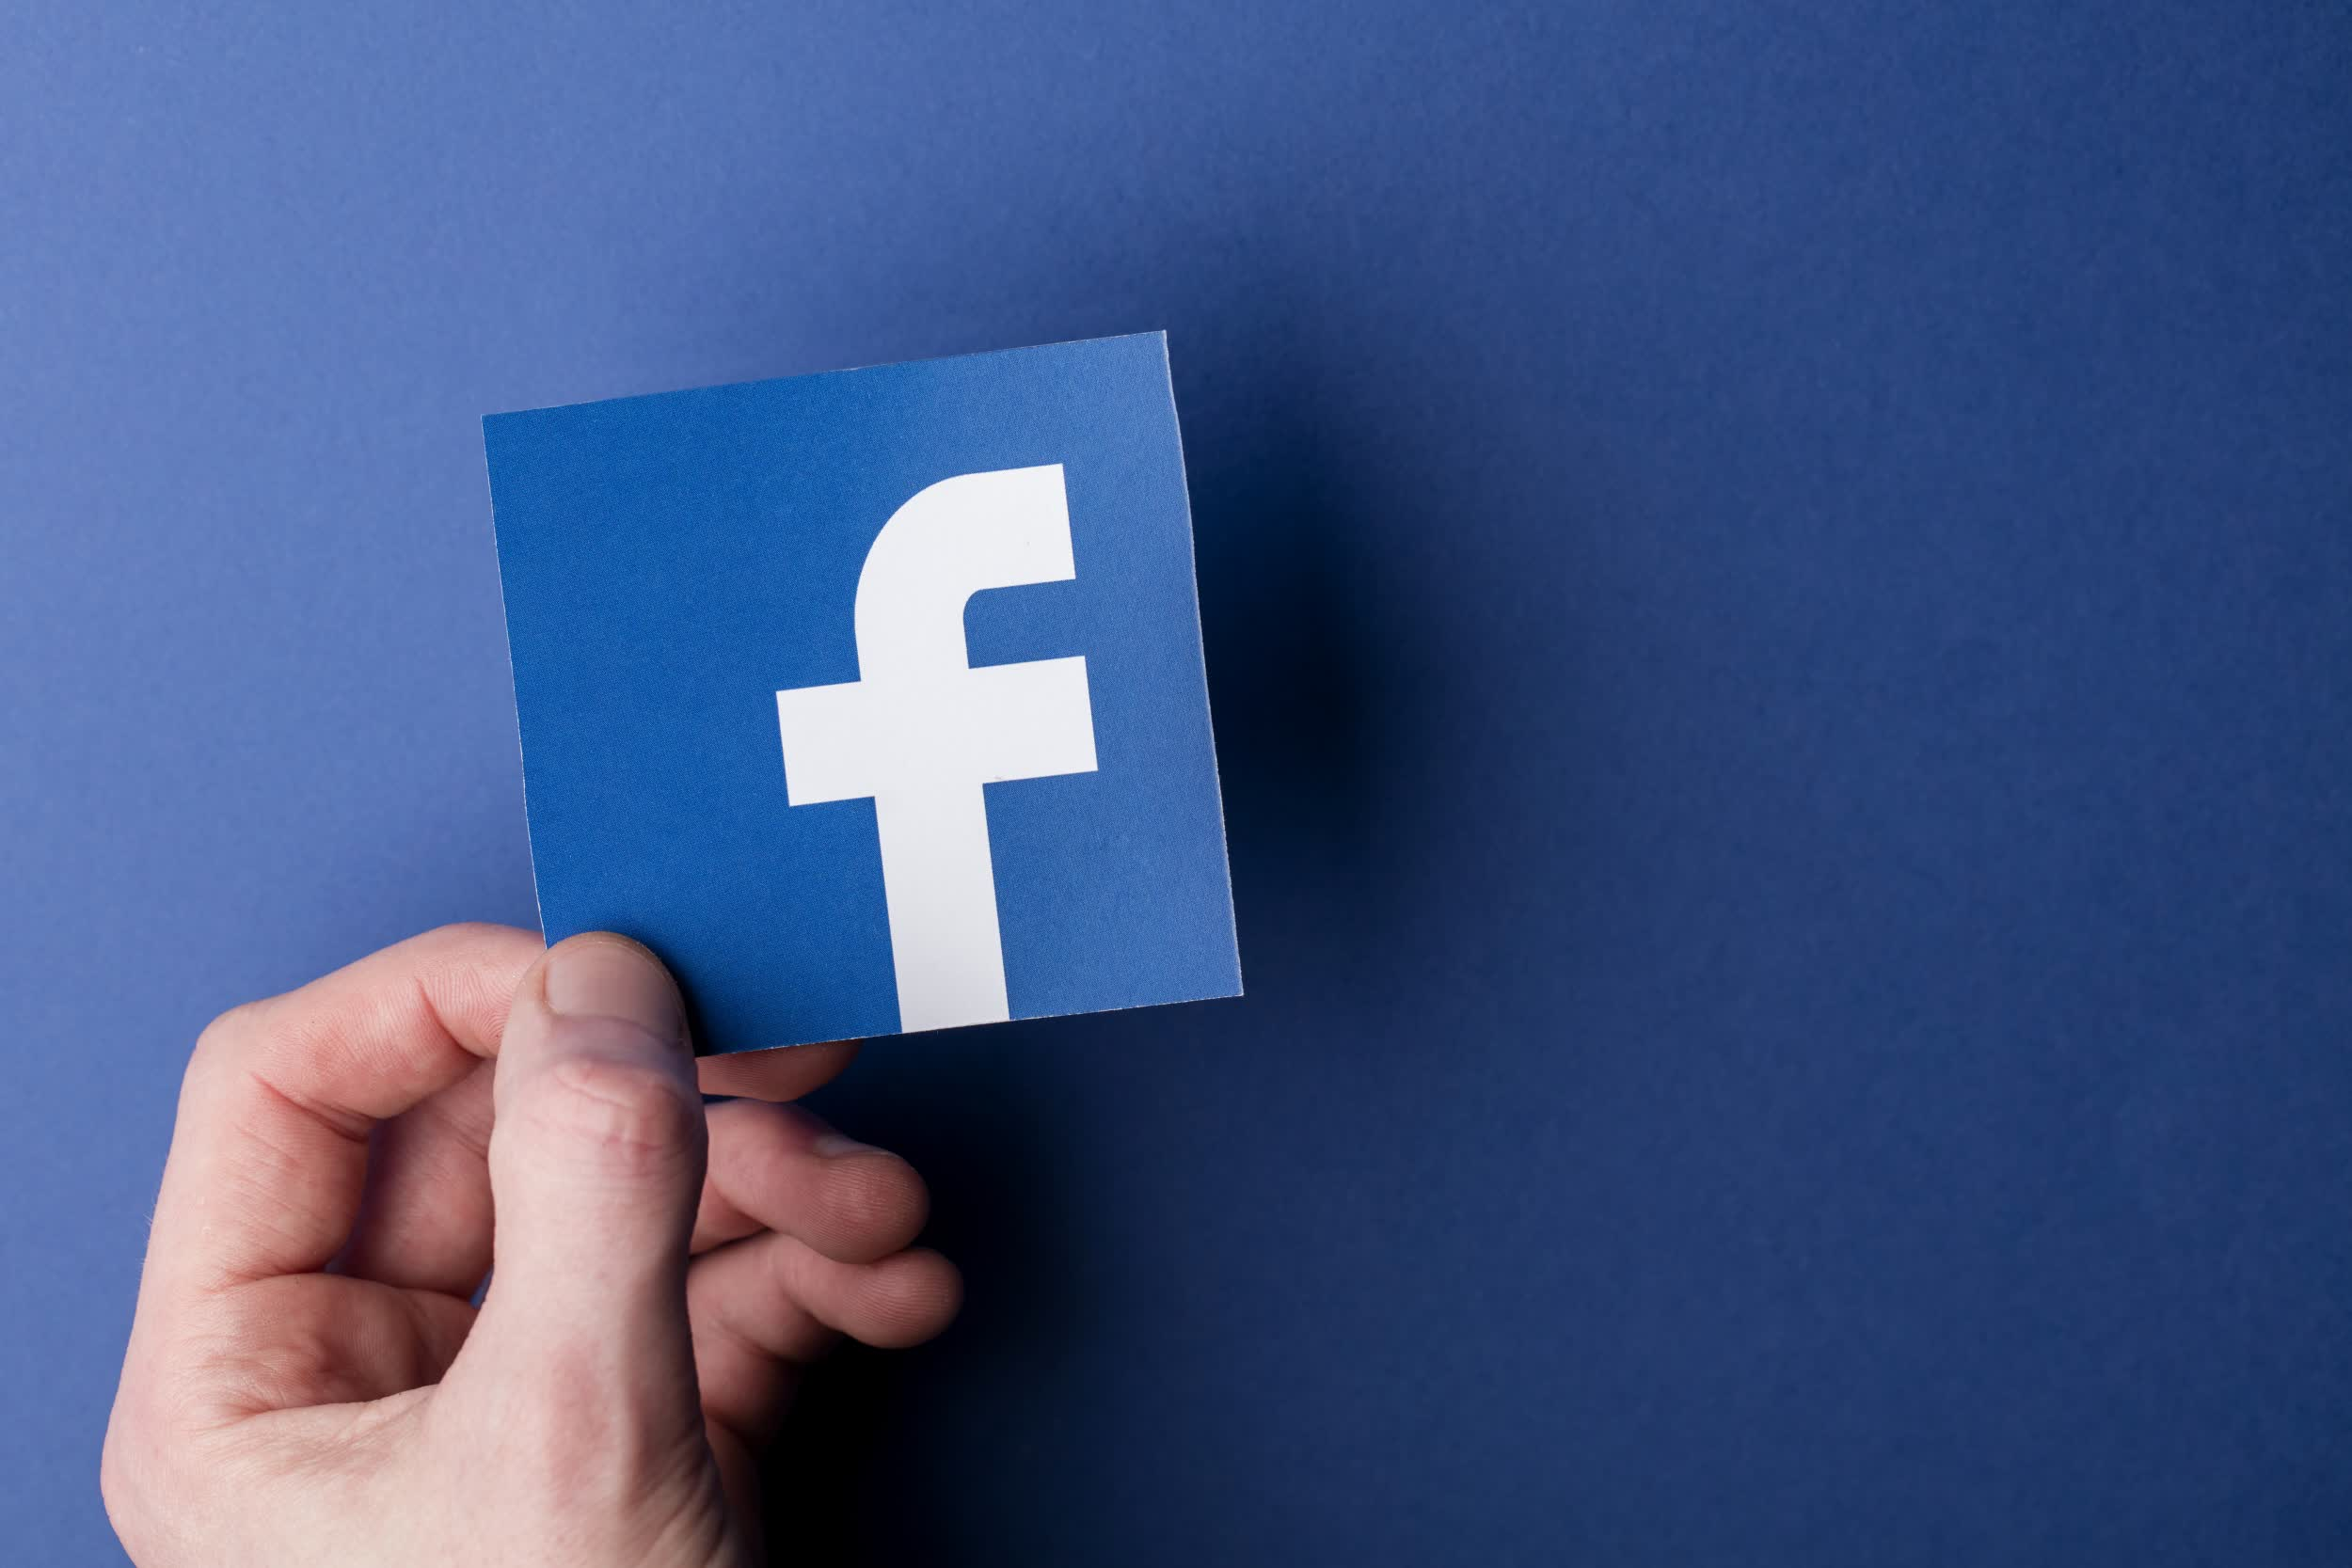 Personal data of 533 million Facebook users leaks online